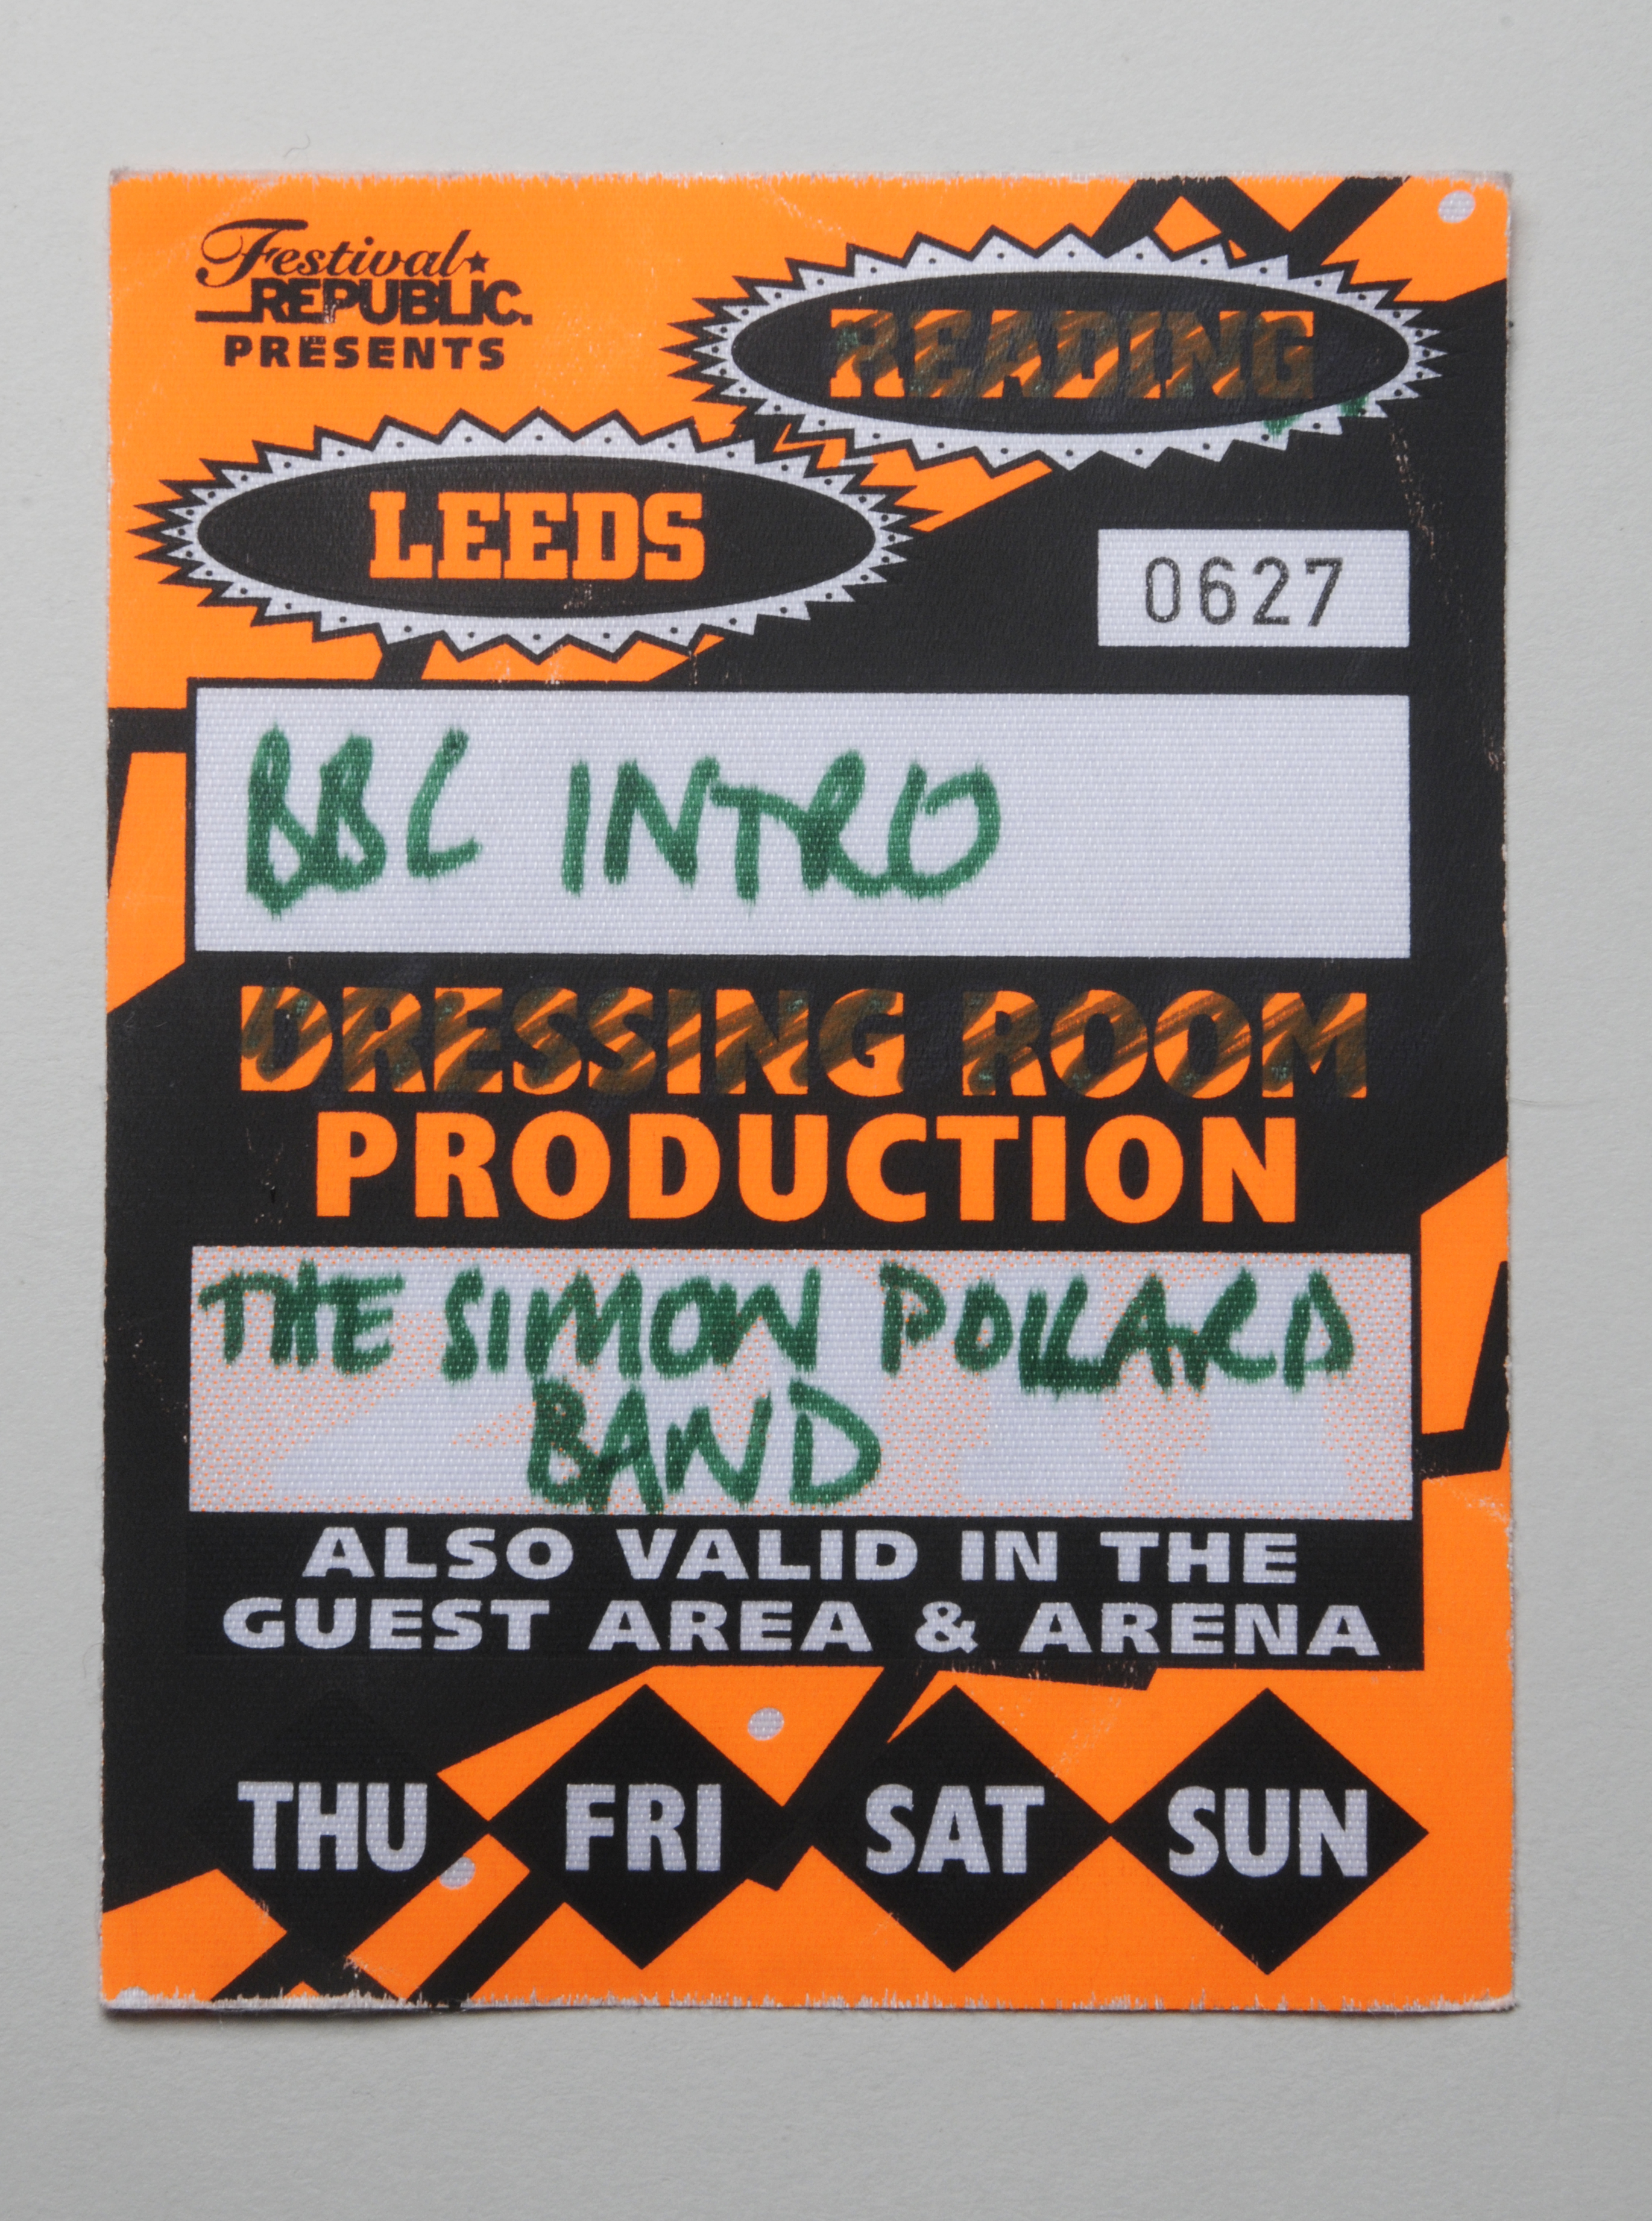 Orange and black print design on thin card.  Pass number 0627 with 'BBC INTRO' and 'Simon Pollard Band' written  on it.